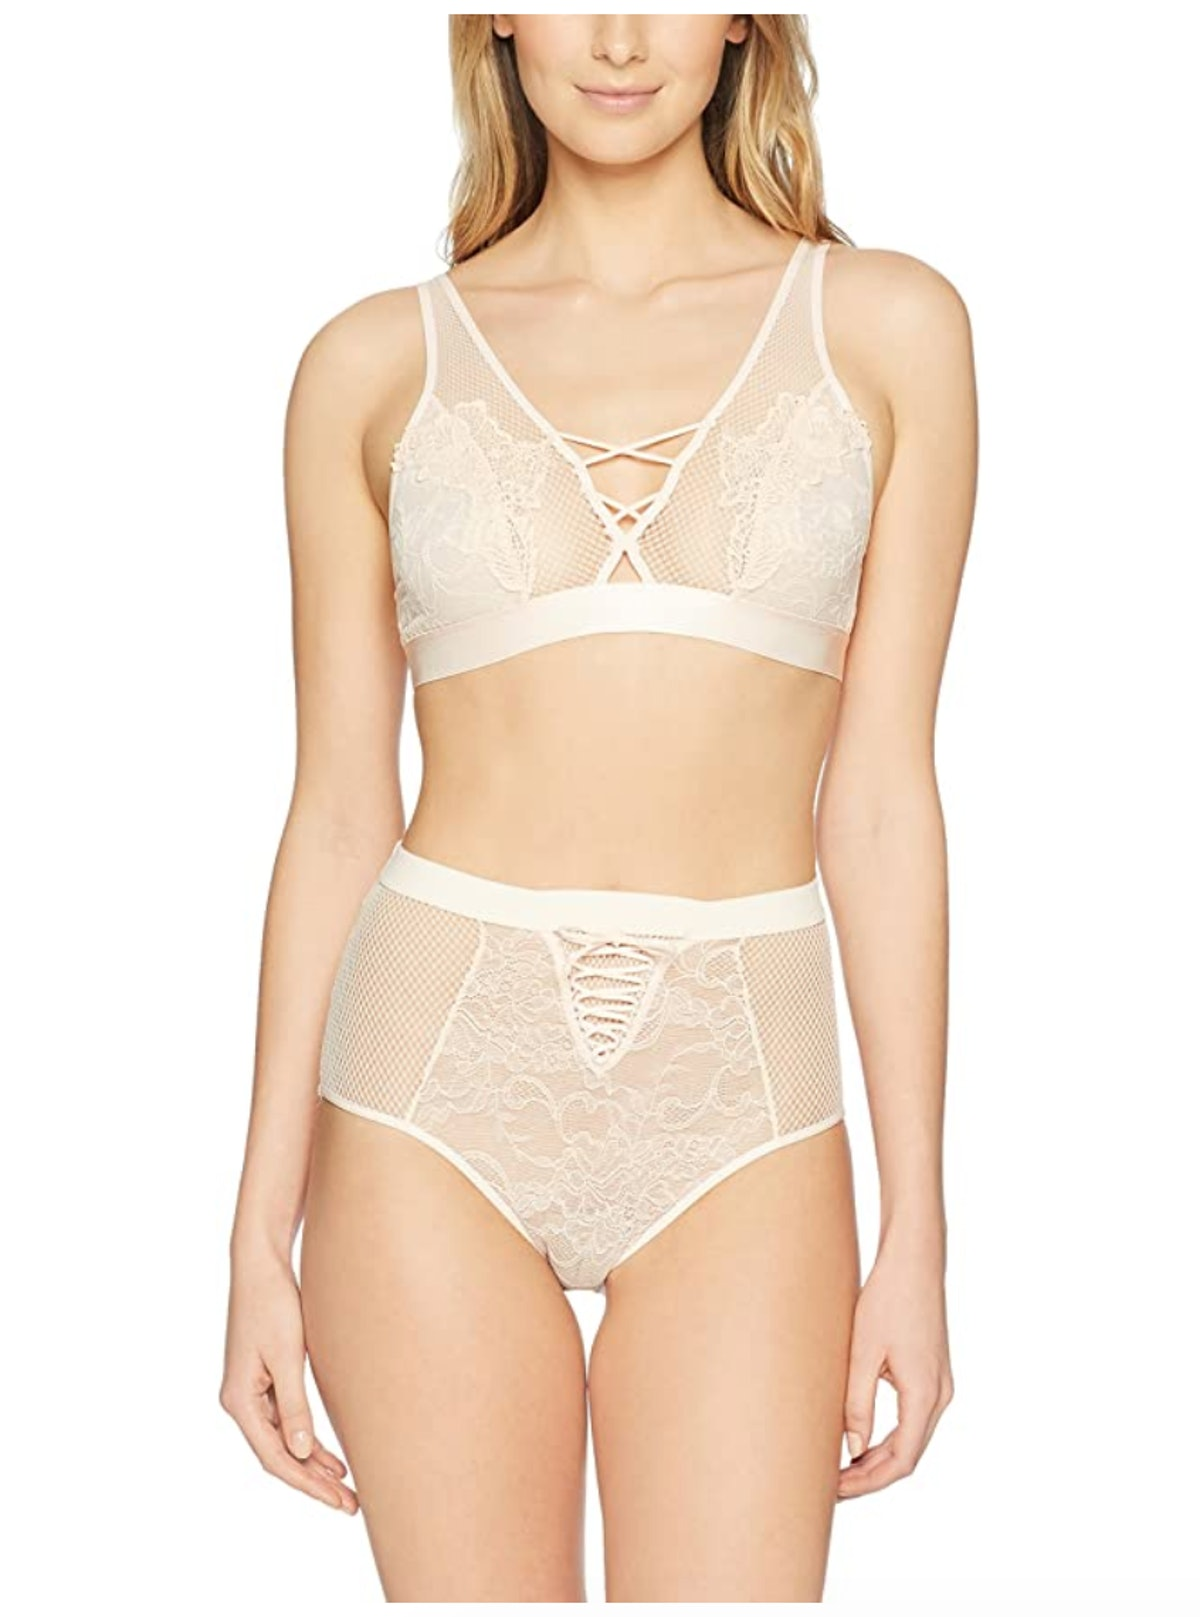 Mae Women's Allover Lace Bralette and High Waisted Panty Set